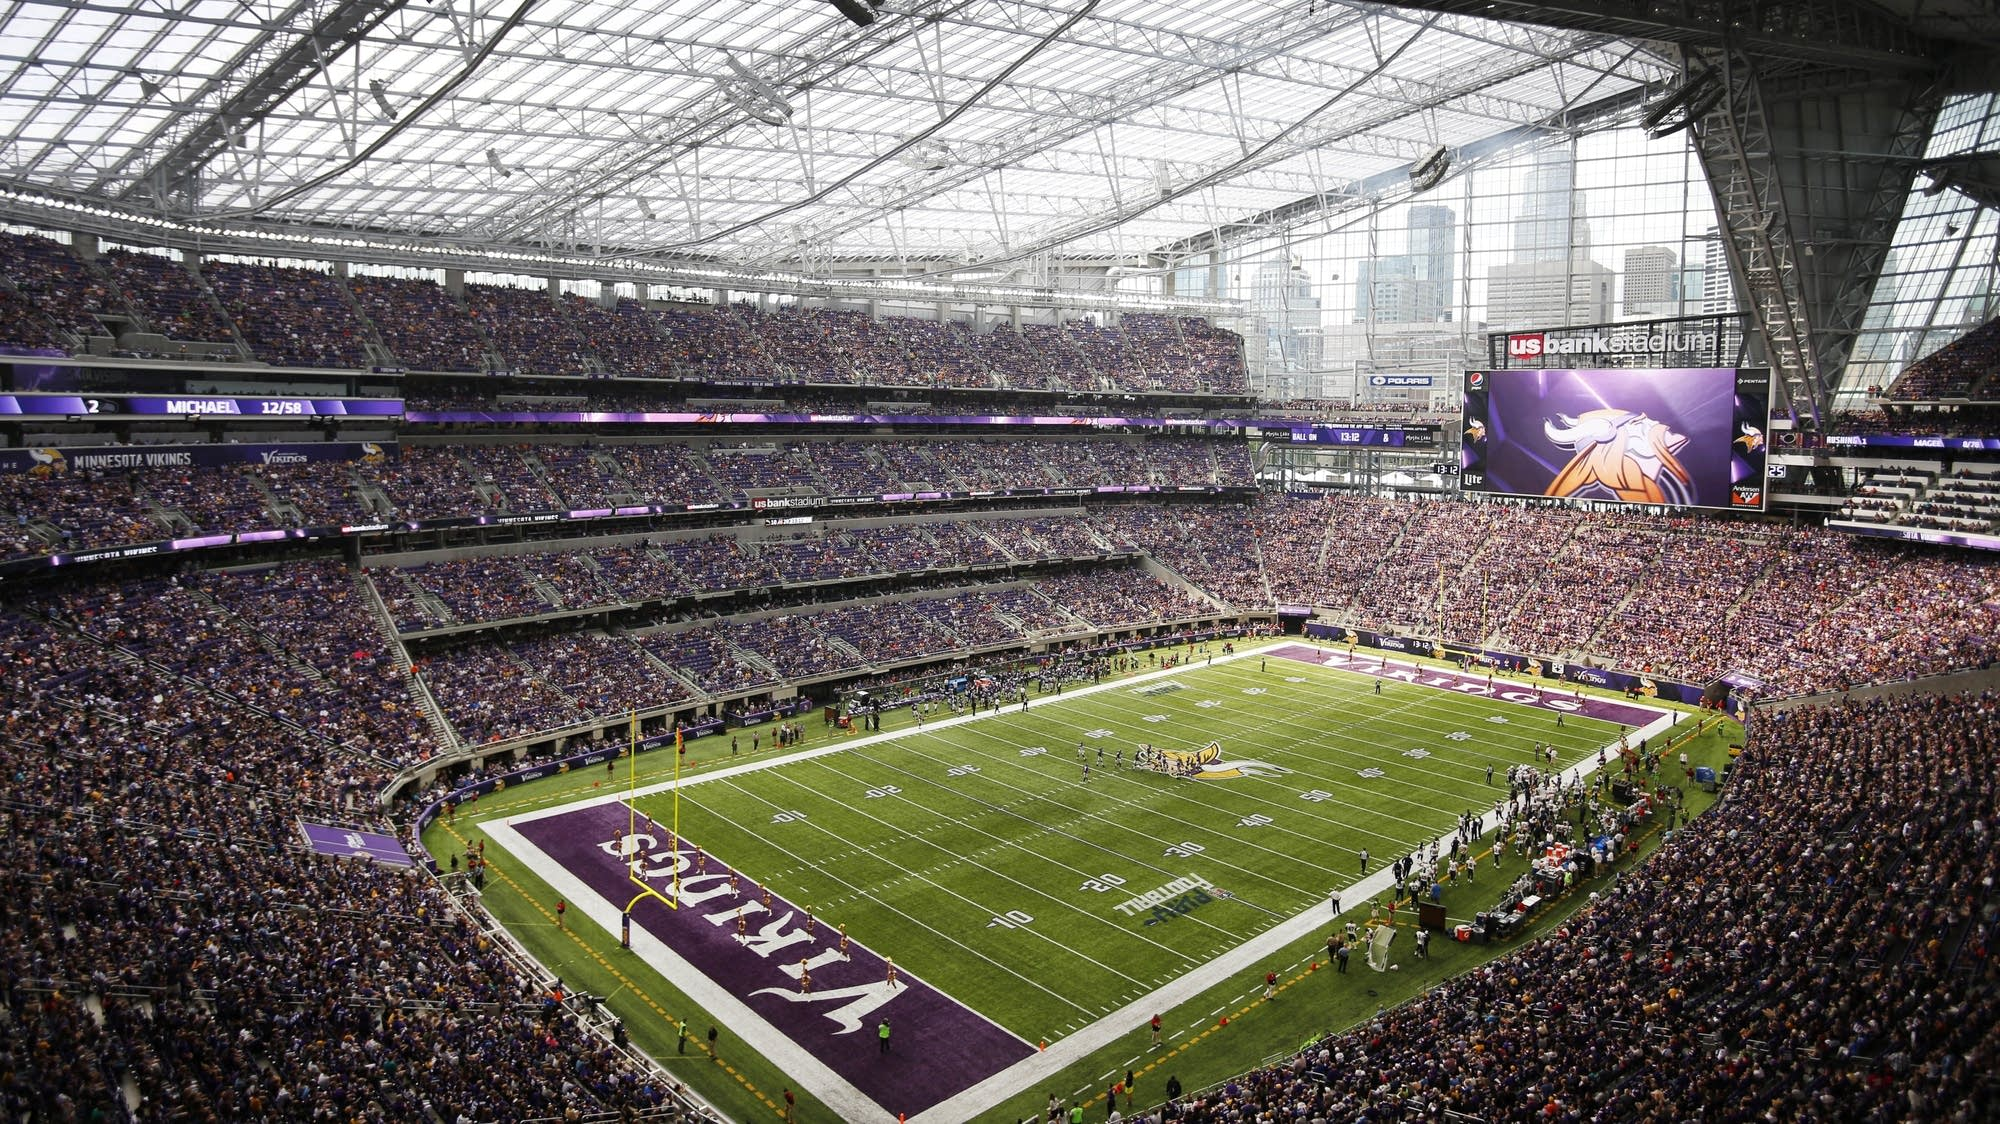 Inside of US Bank Stadium during Vikings game